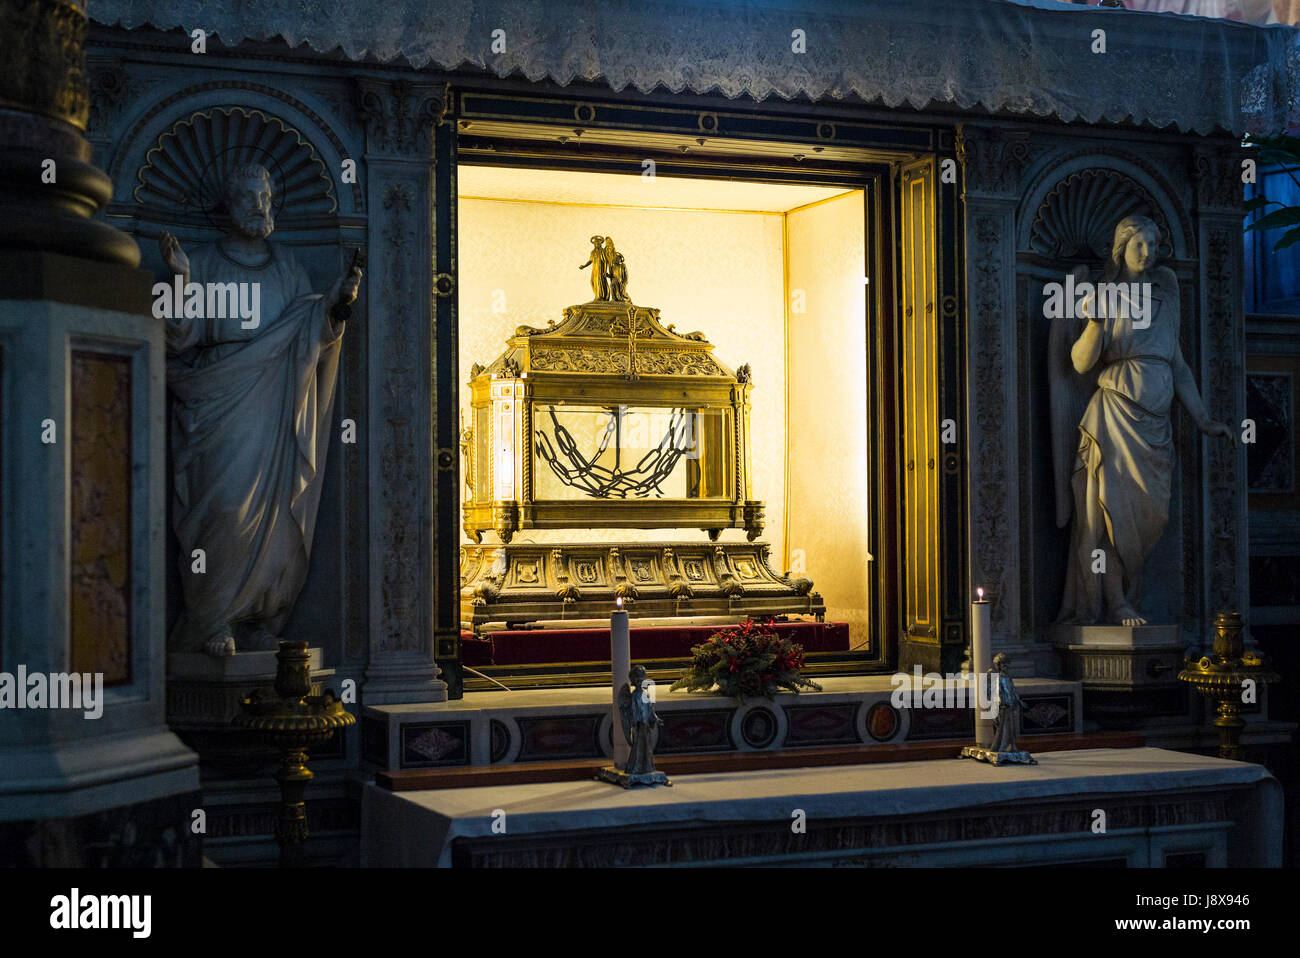 Rome. Italy. Basilica di San Pietro in Vincoli, reliquary containing the chains of St Peter. Stock Photo